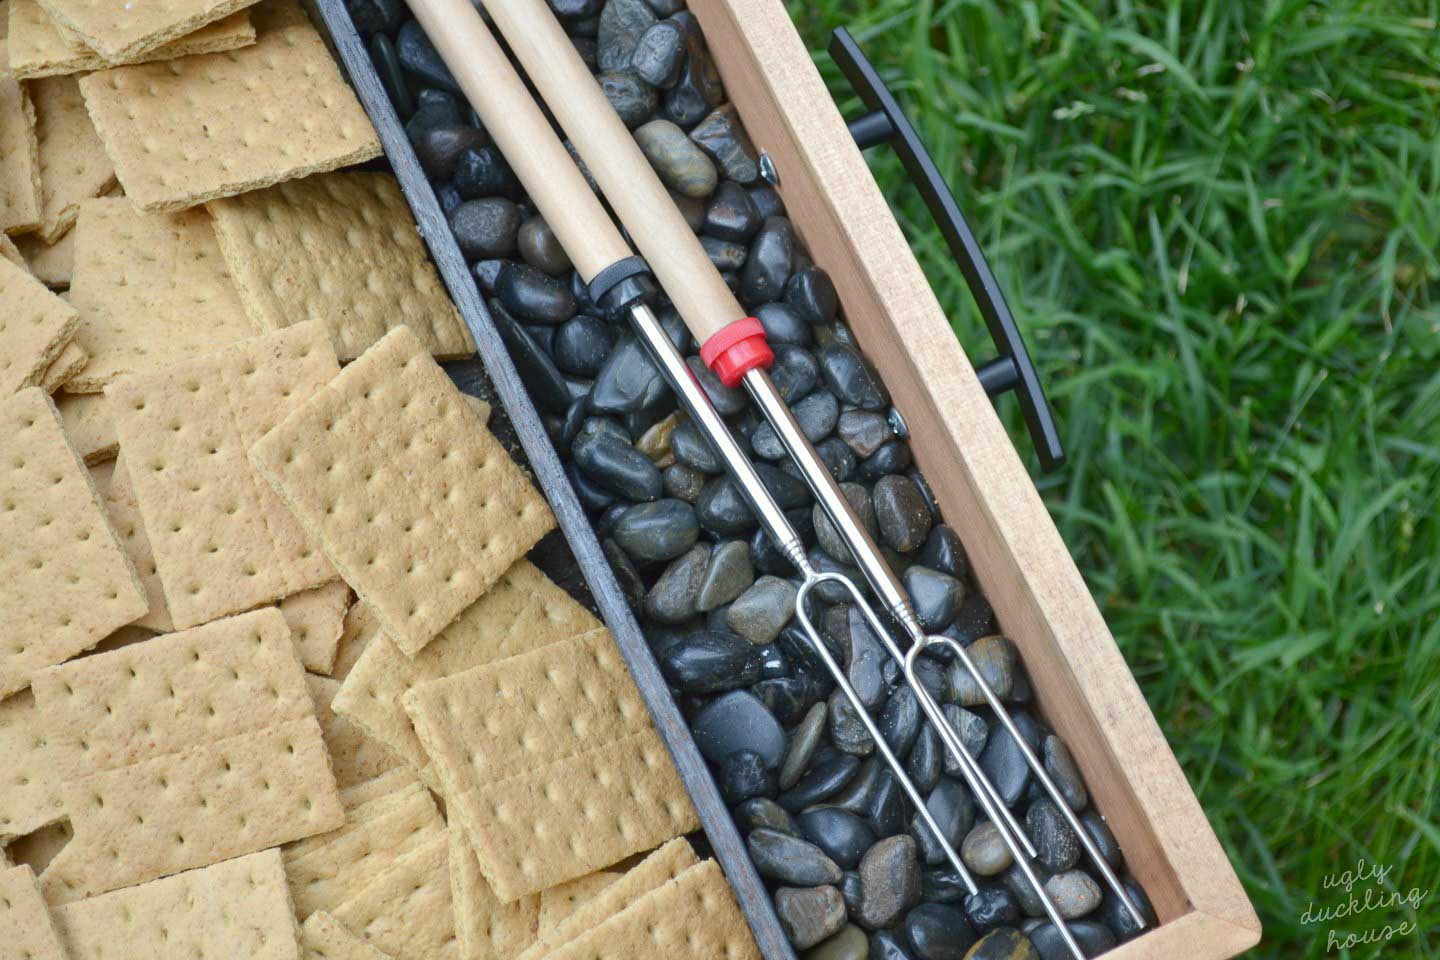 corner of smores tray with roasting sticks